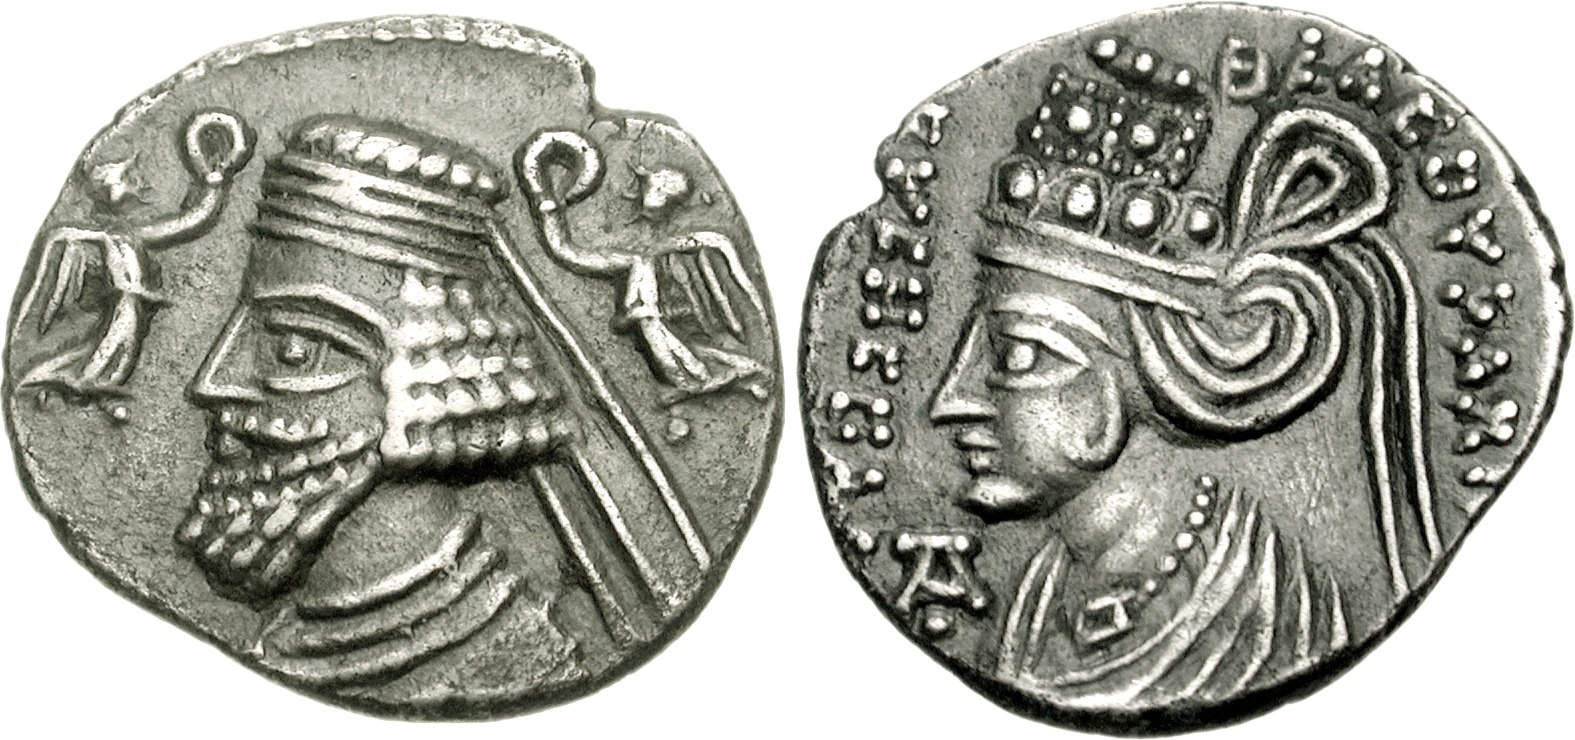 Coin of the Parthian king Phraataces and of Musa